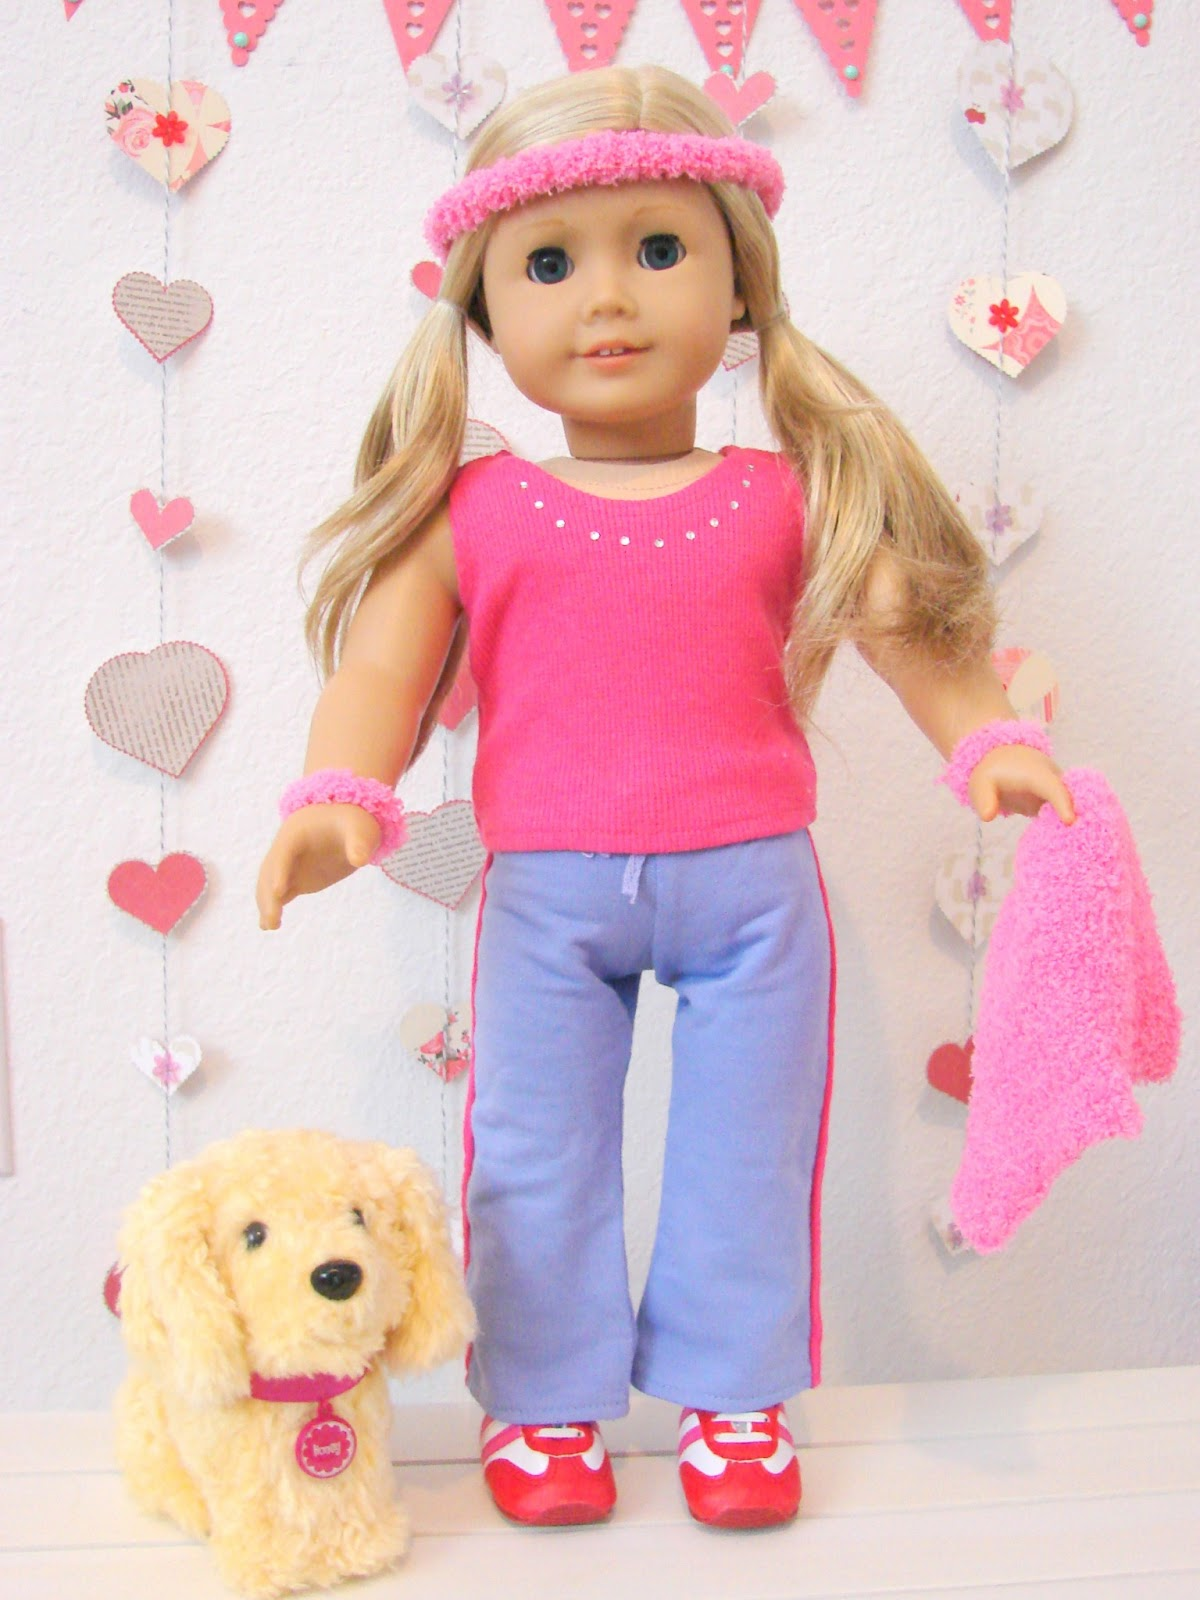 Play Your Card Right On Pinterest: American Girl Doll Play: Doll Craft